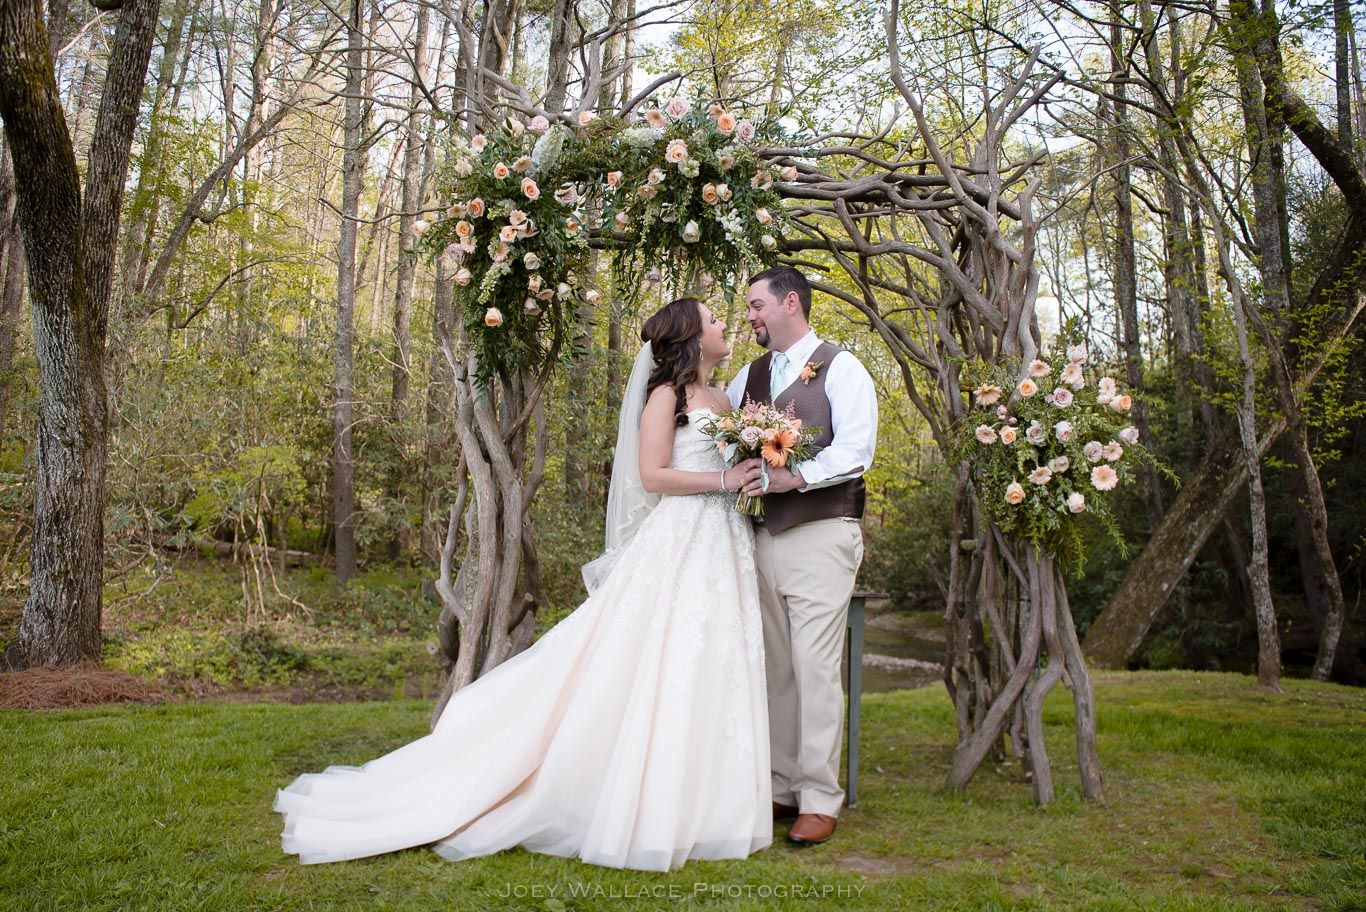 Rustic Wedding Reception at the Willow Creek Farm in Georgia